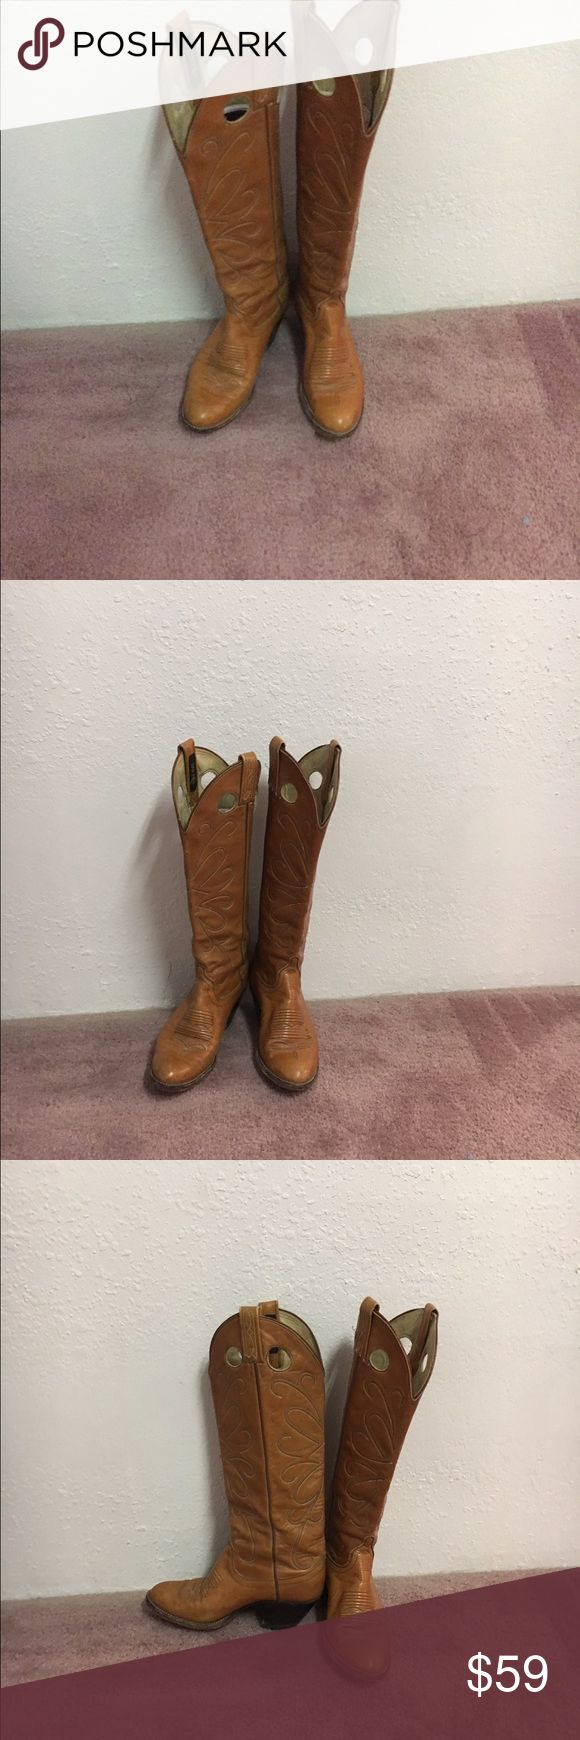 Hand sewn Dan Post boots. All leather . Fabulous boots. Nice light brown leather  Beautiful stitching.  Size 5 C. Fits a 6.5 women's. Vintage beauty. Dan Post Shoes Heeled Boots